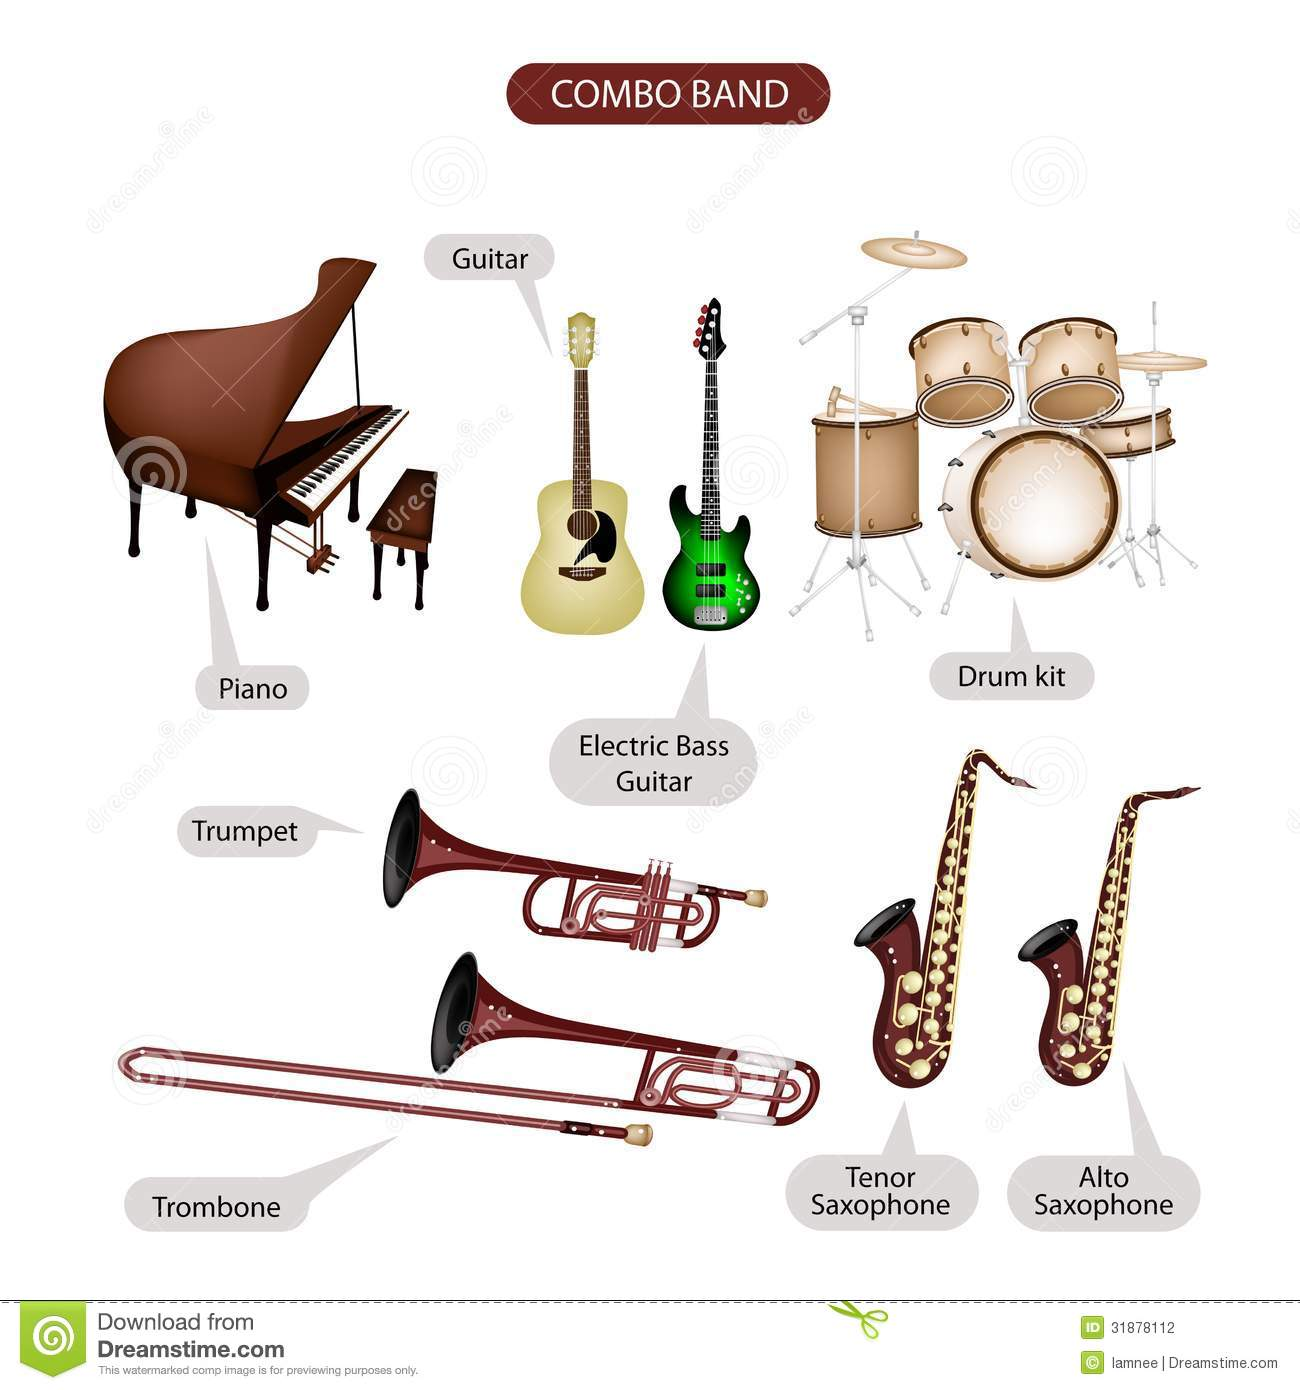 A Set Of Combo Brand Music Equipment Stock Photography